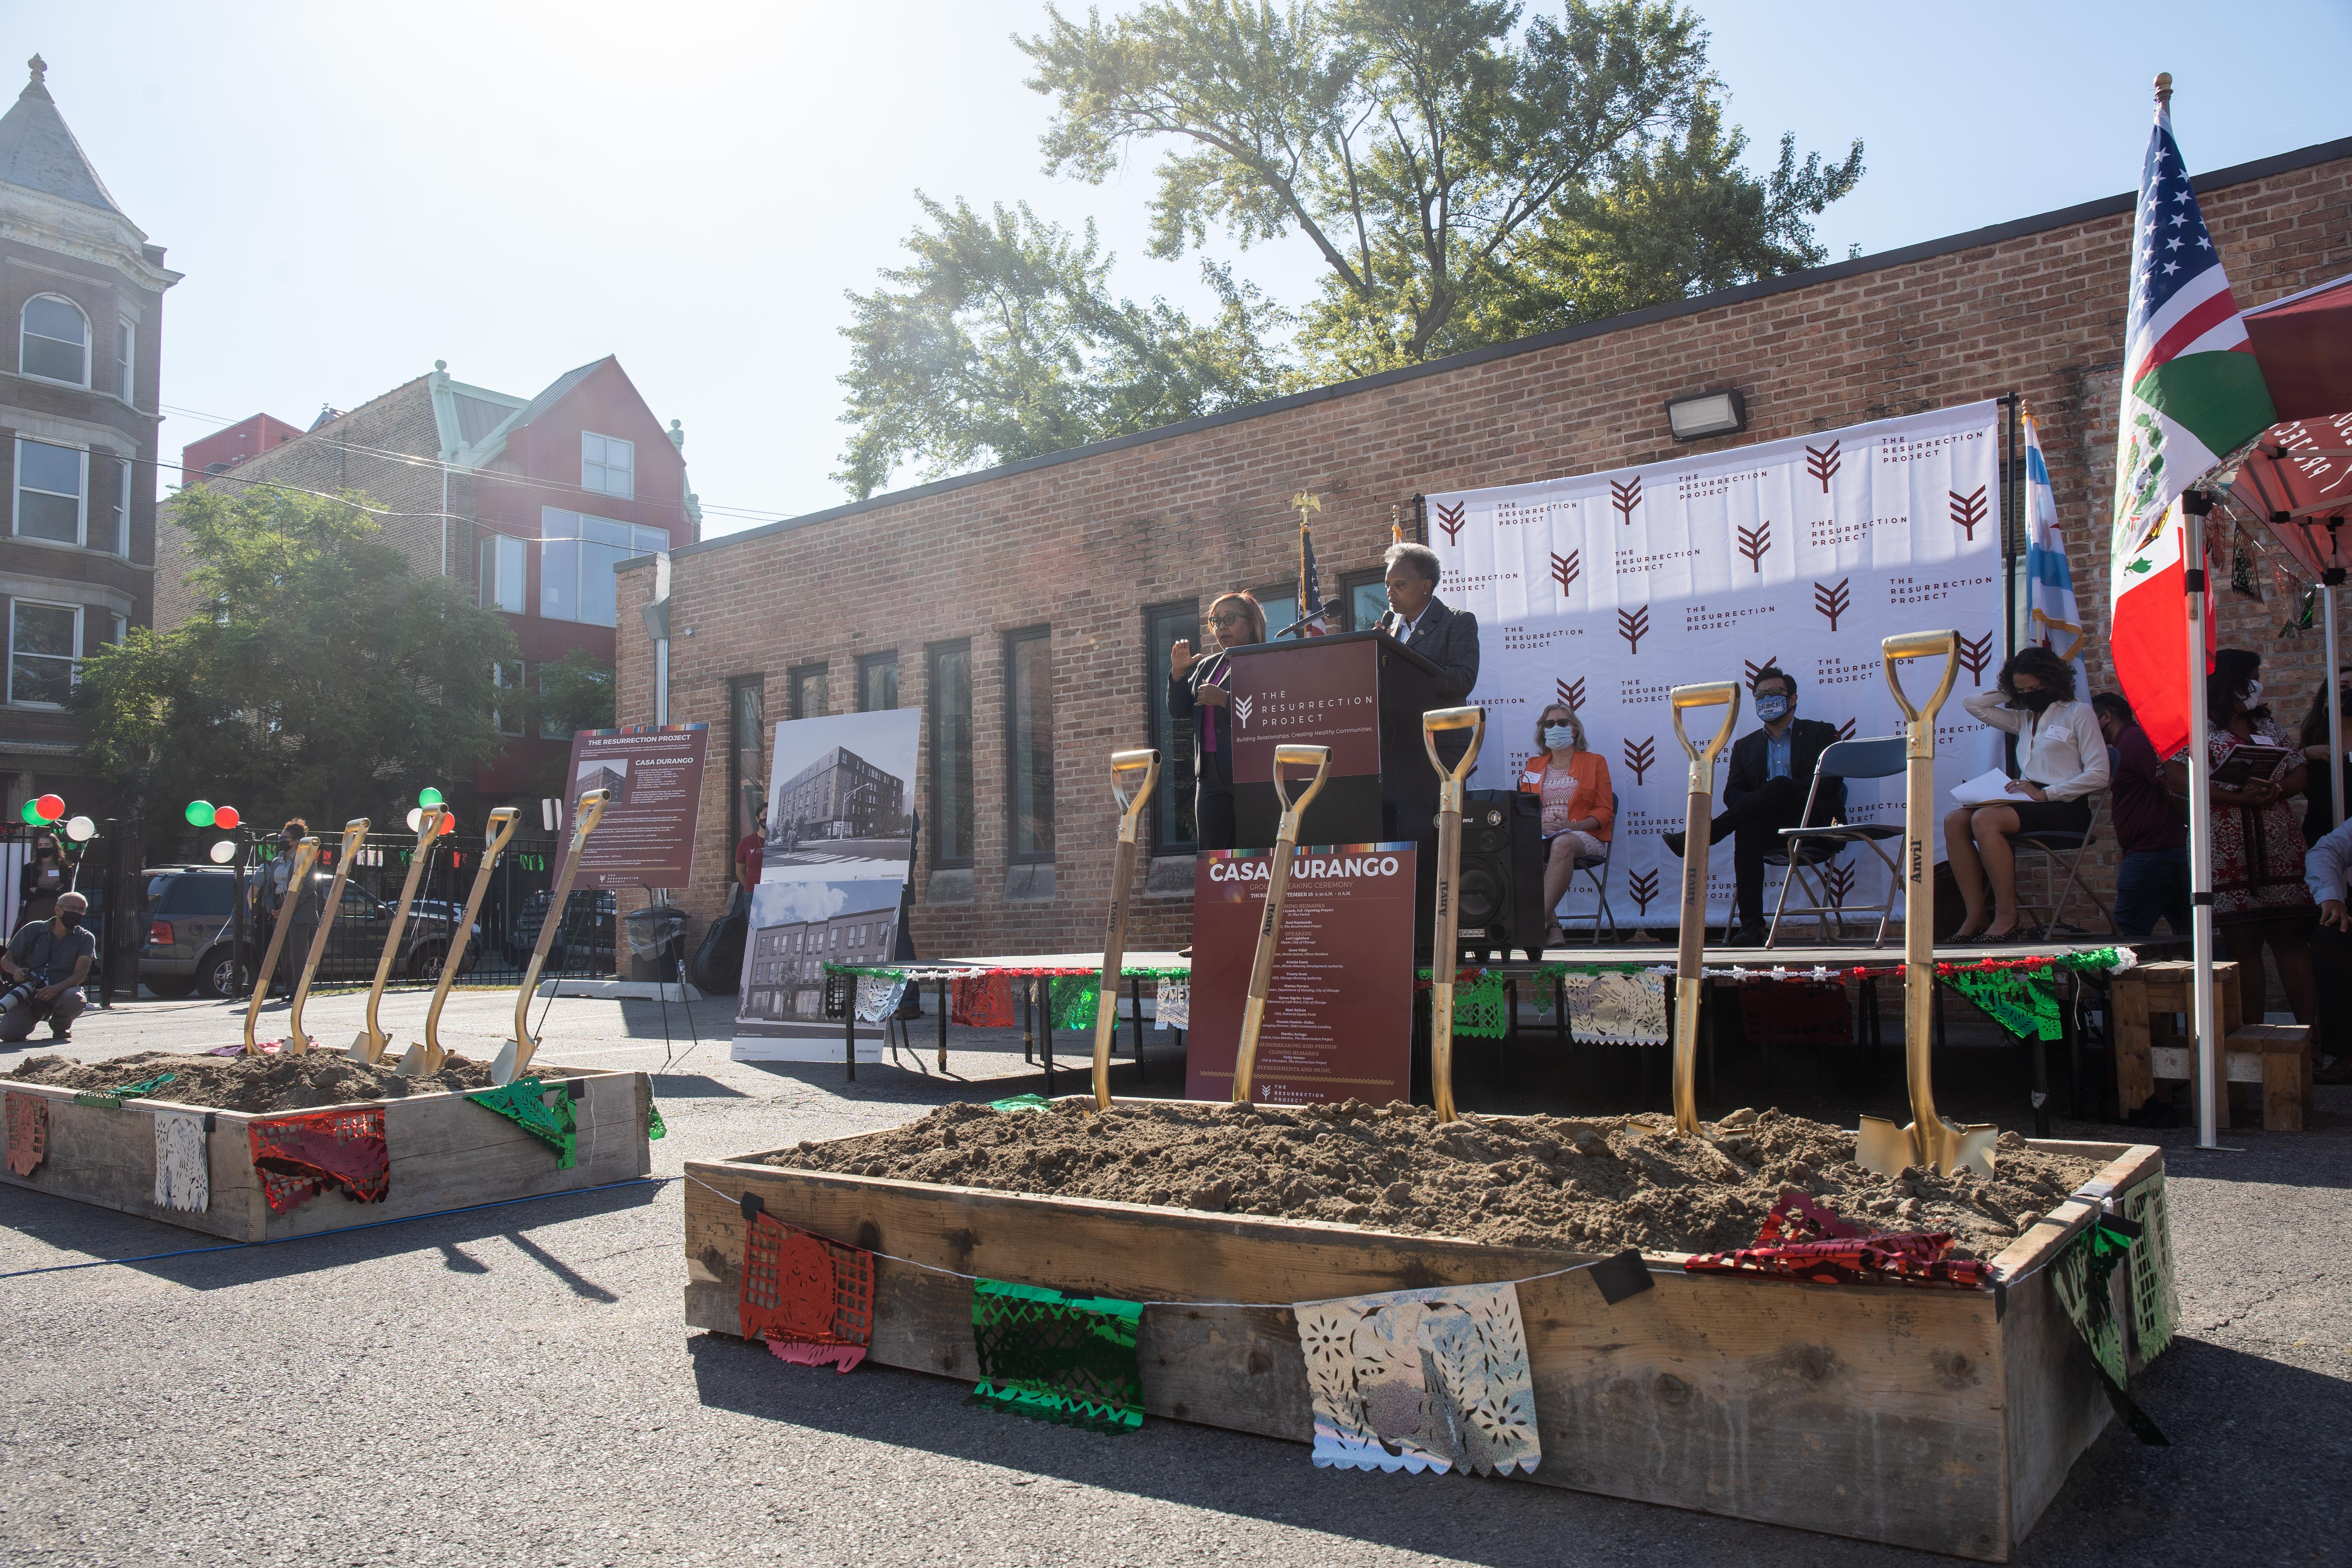 Chicago Mayor Lori Lightfoot speaks Thursday during the groundbreaking ceremony for Casa Durango, an affordable housing development by the Resurrection Project in the Pilsen neighborhood.